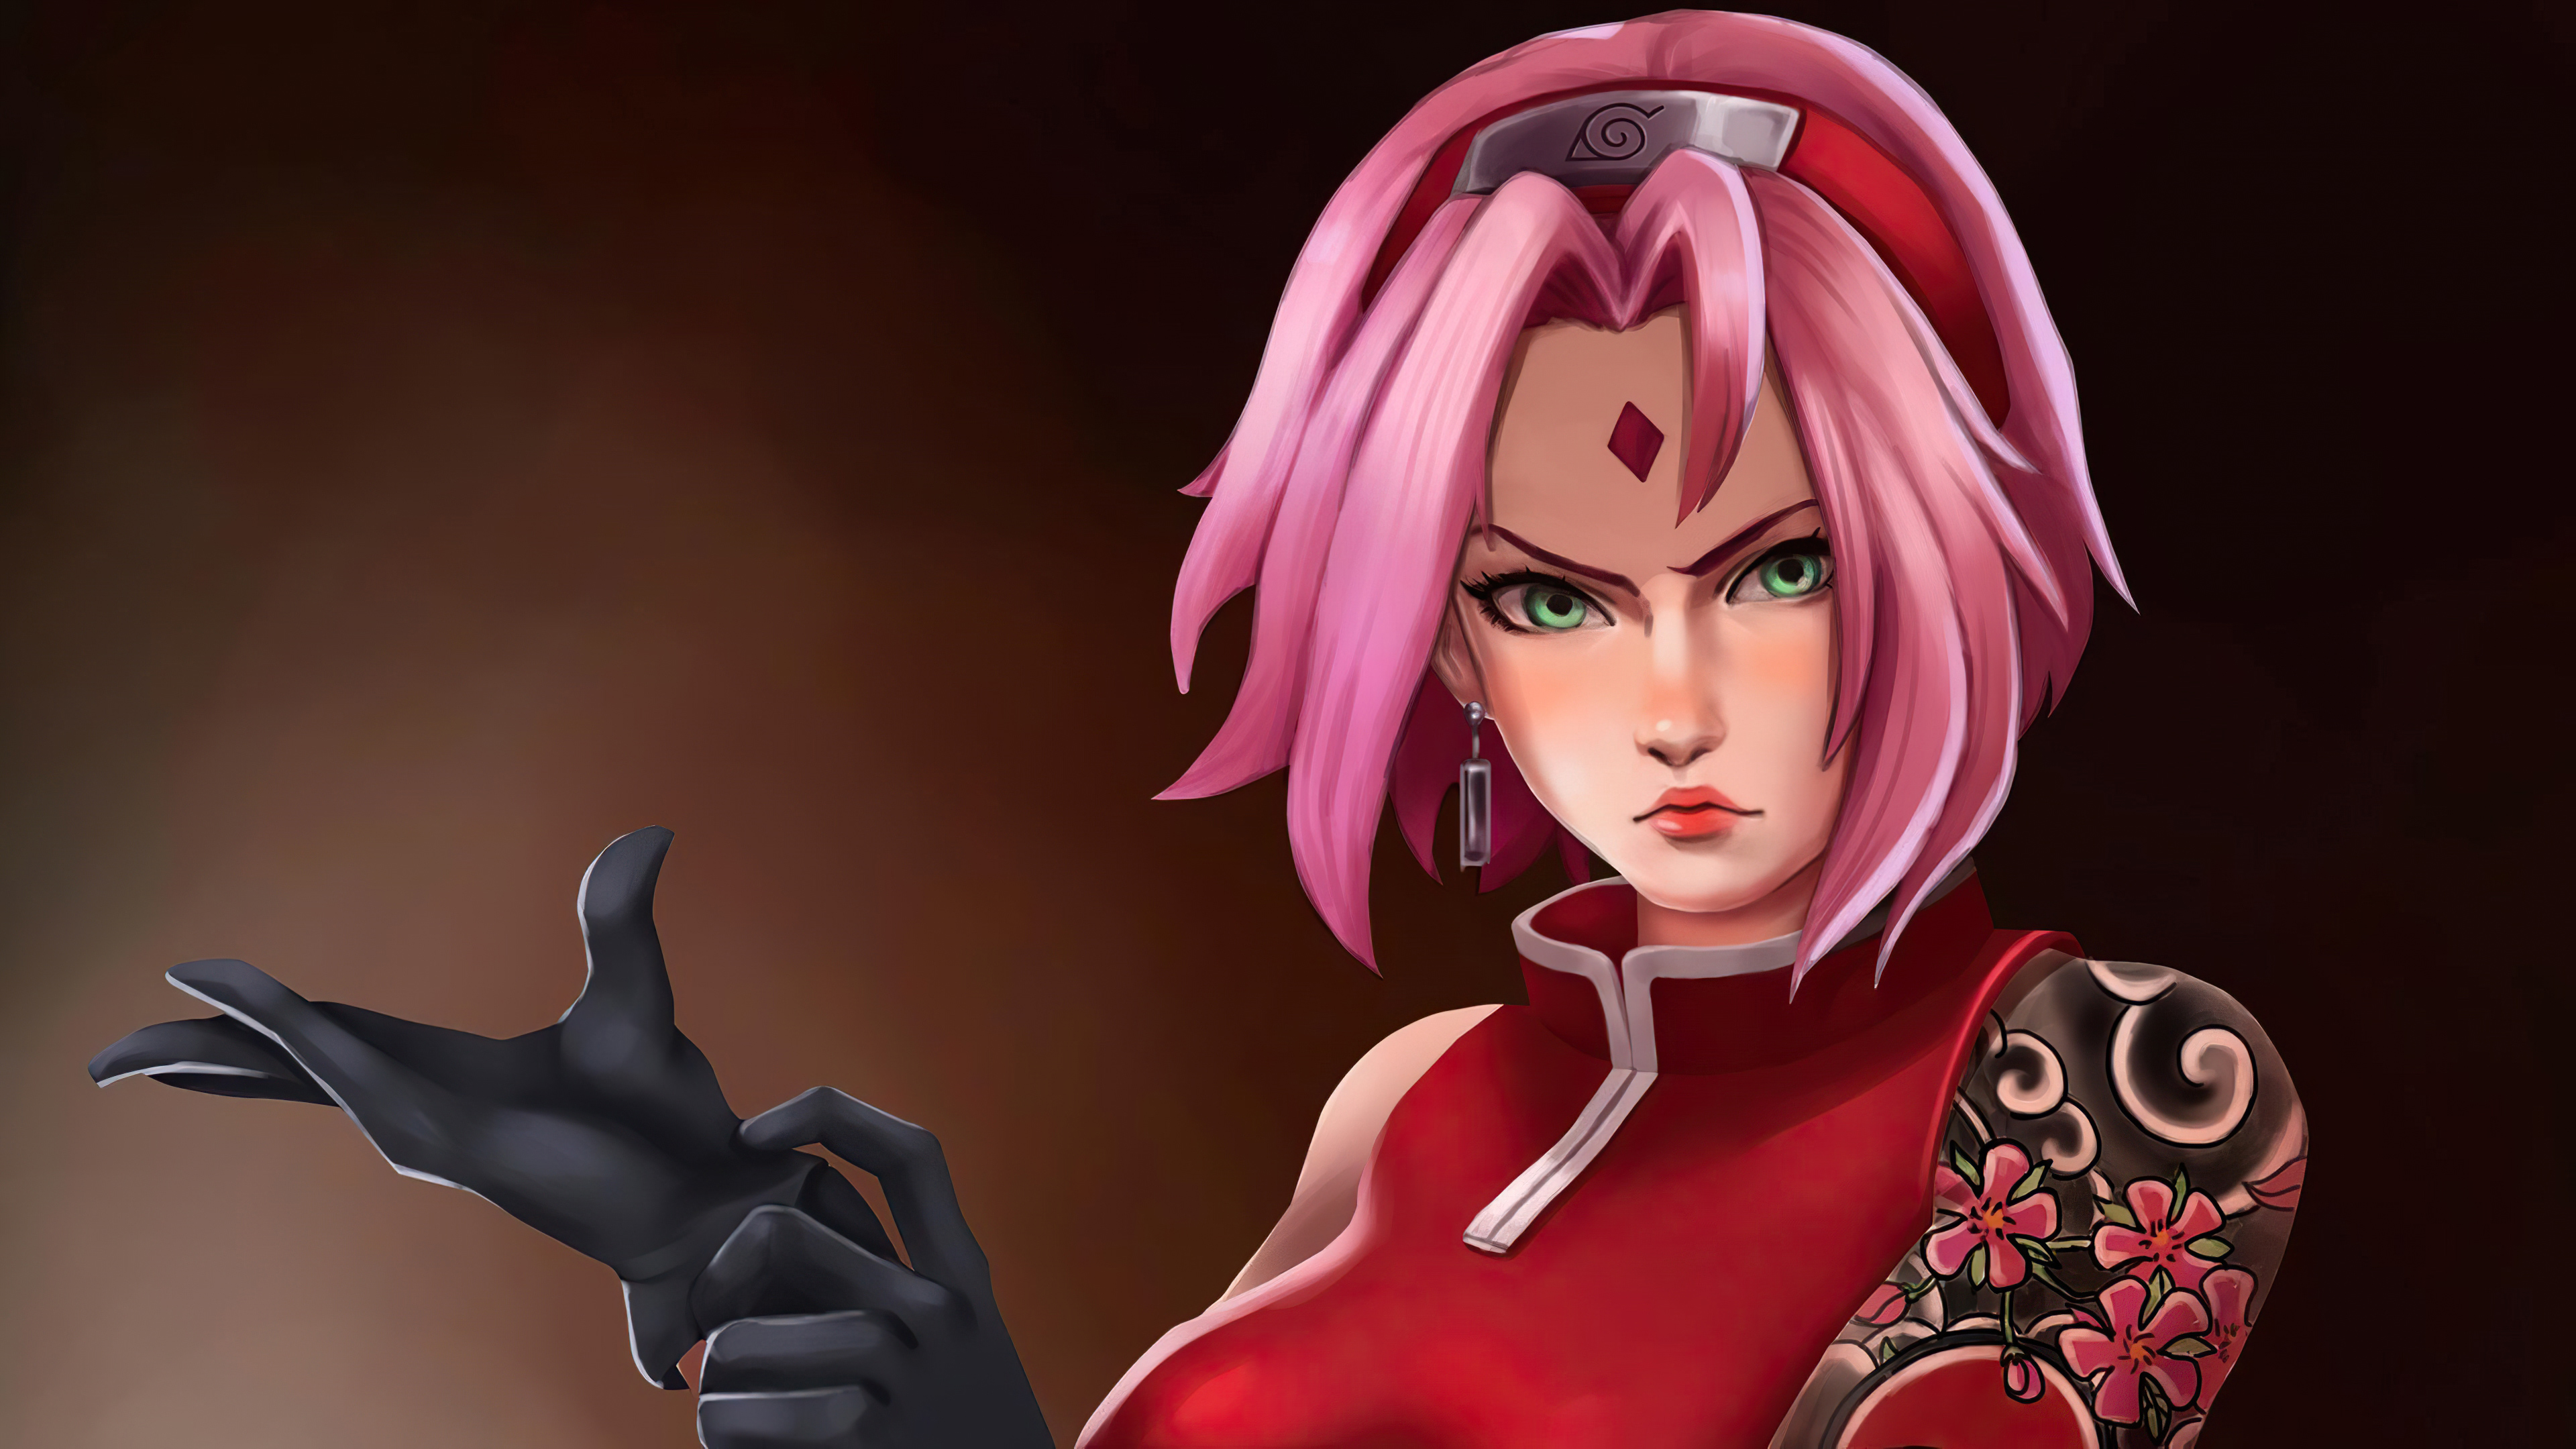 1920x1080 Sakura Haruno From Naruto 4k Laptop Full Hd 1080p Hd 4k Wallpapers Images Backgrounds Photos And Pictures